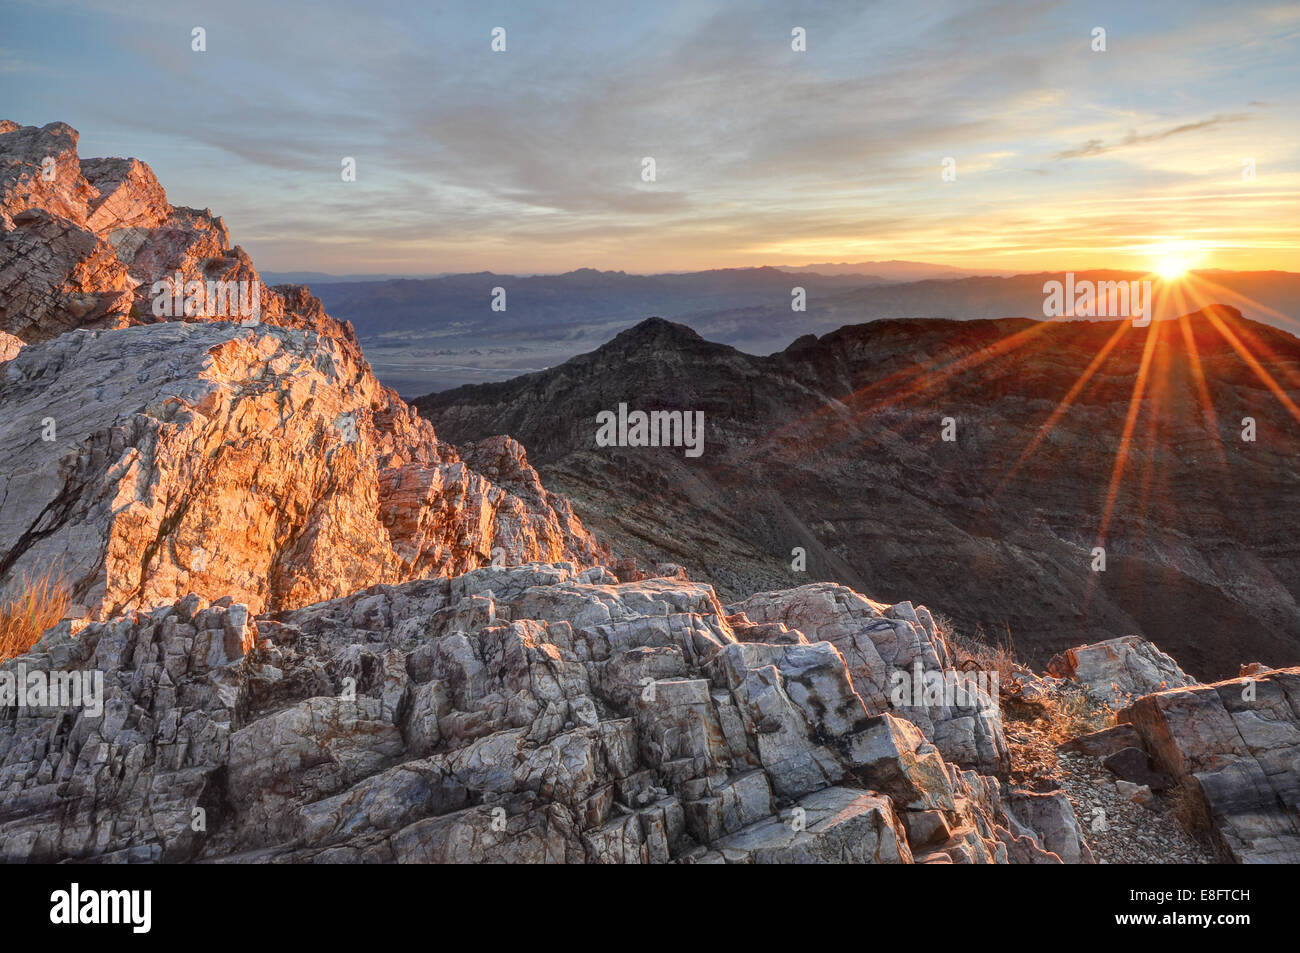 USA, California, Death Valley National Park, Sunrise at Aguereberry Point - Stock Image